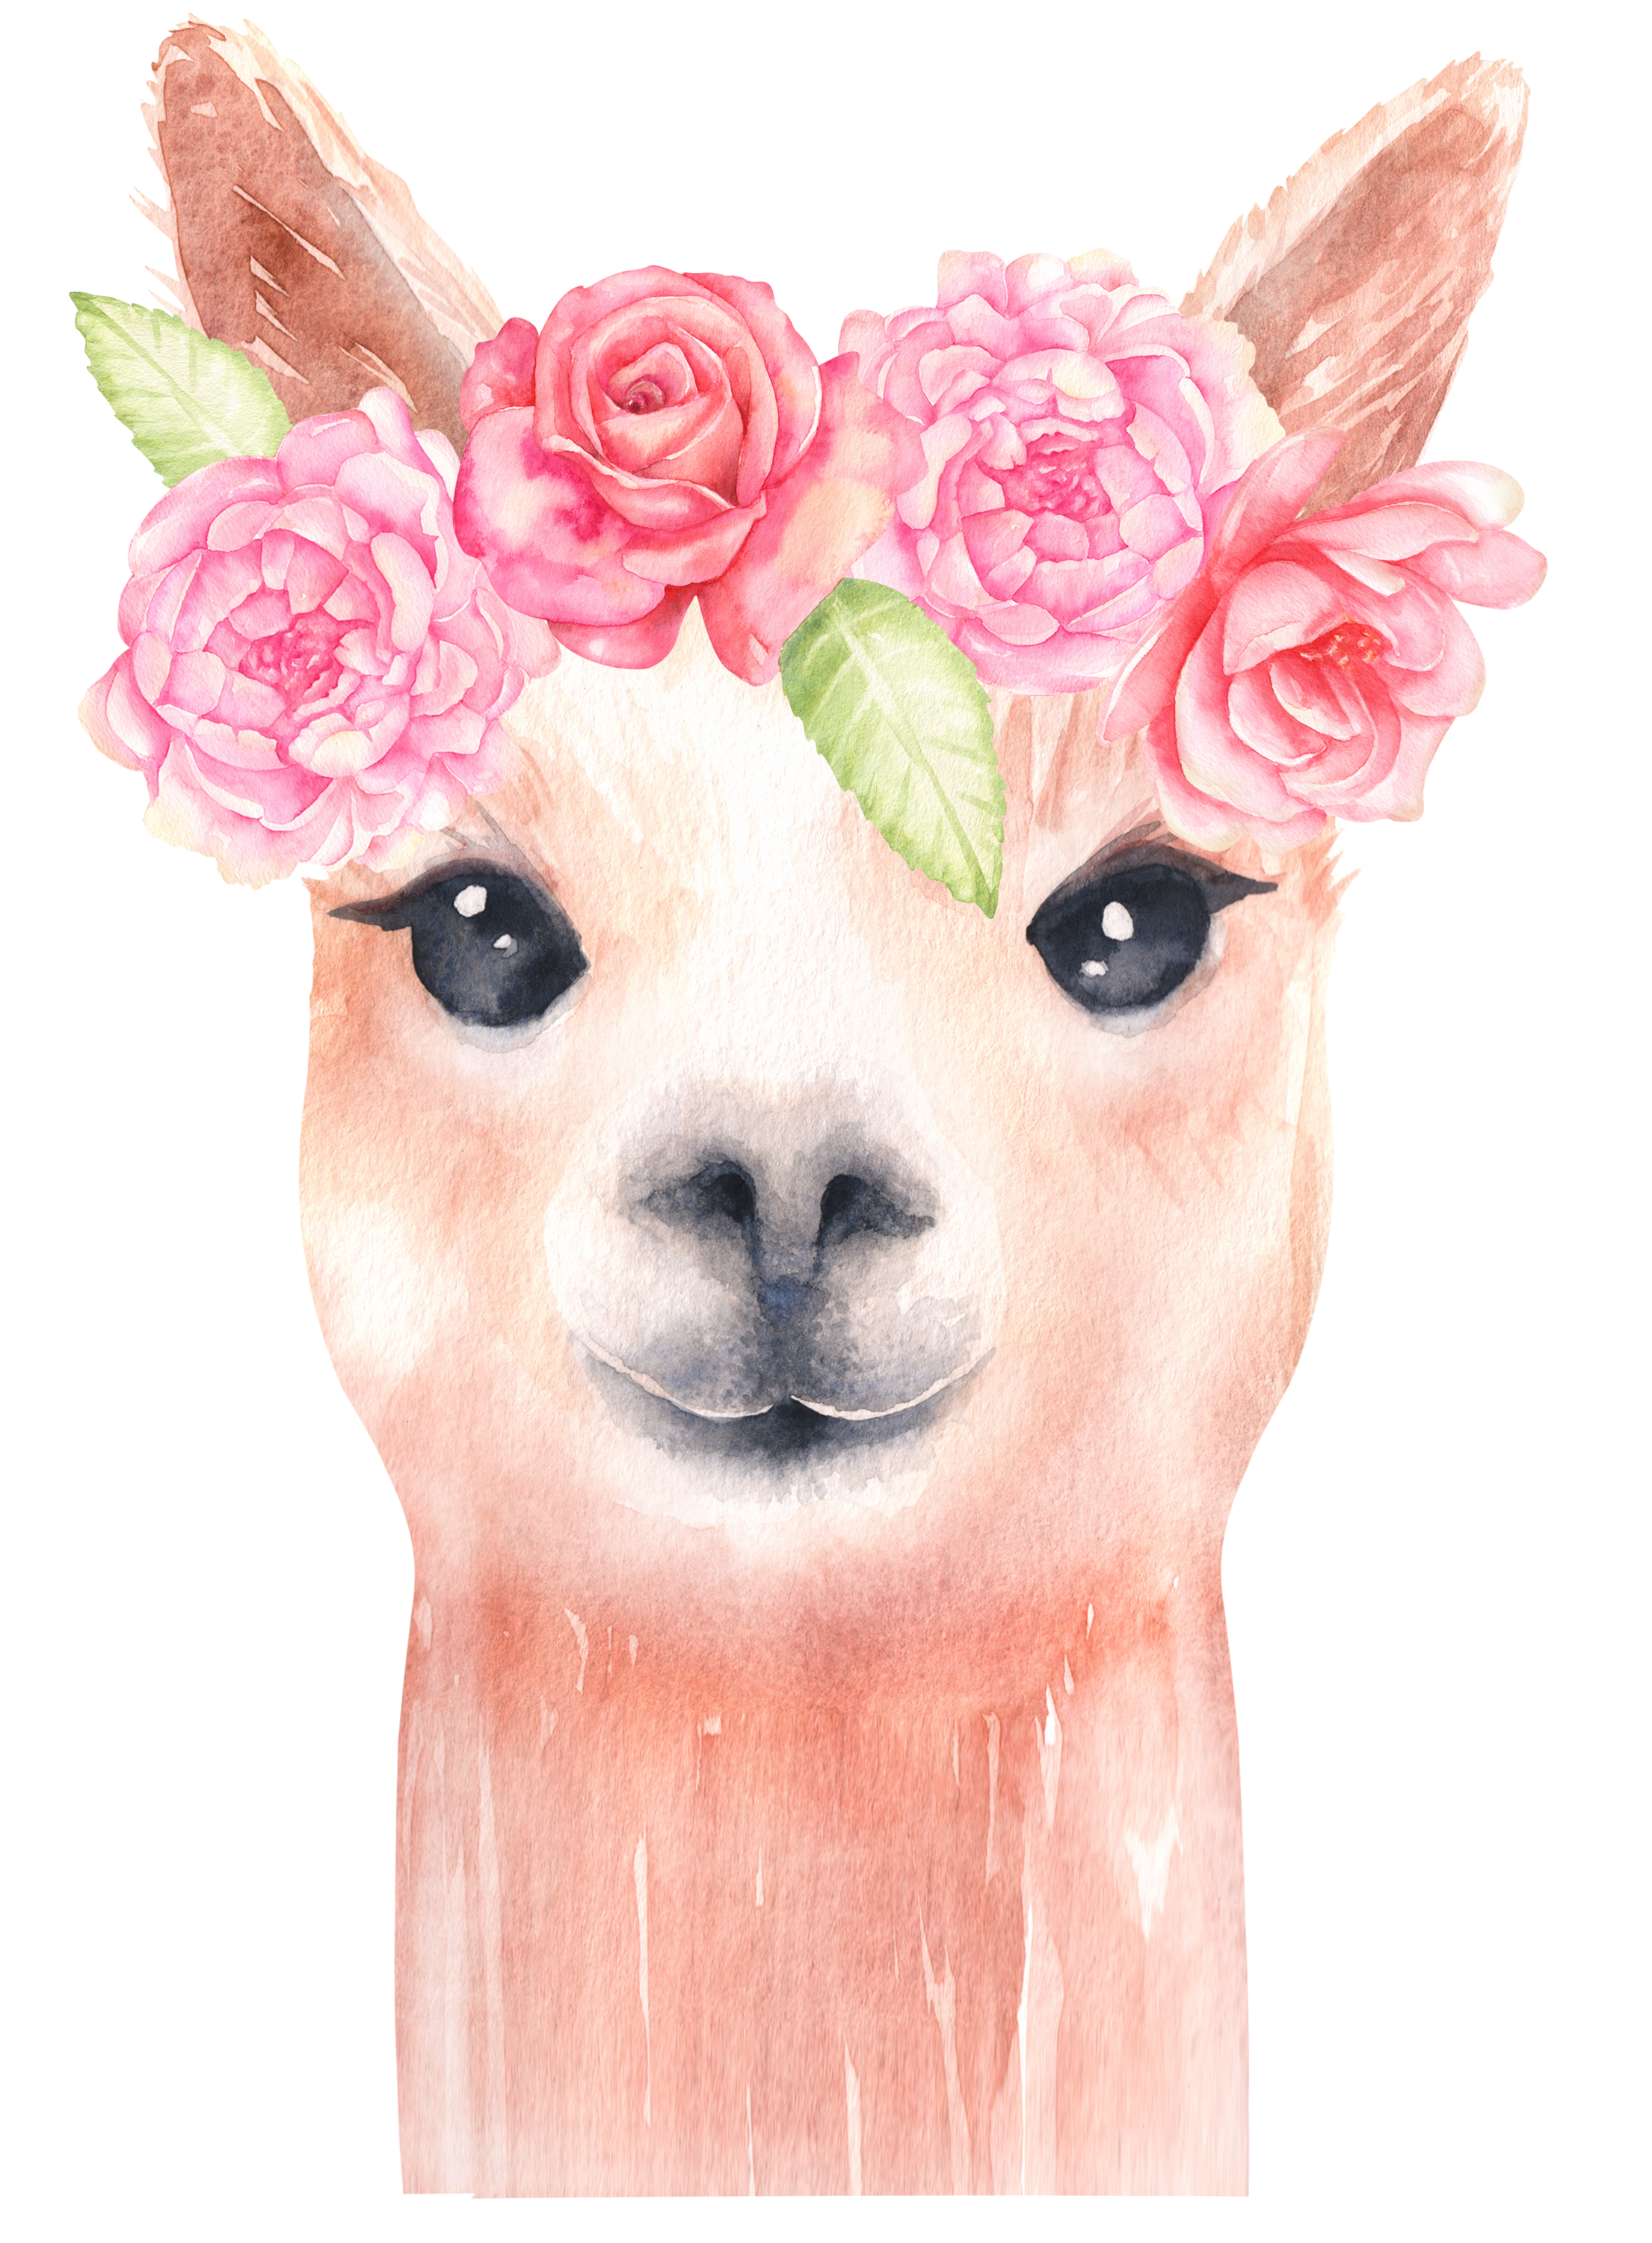 T rex clipart with sun glasses picture royalty free download Llama watercolor/ Llama clipart/ llama graphics/ watercolor clipart ... picture royalty free download